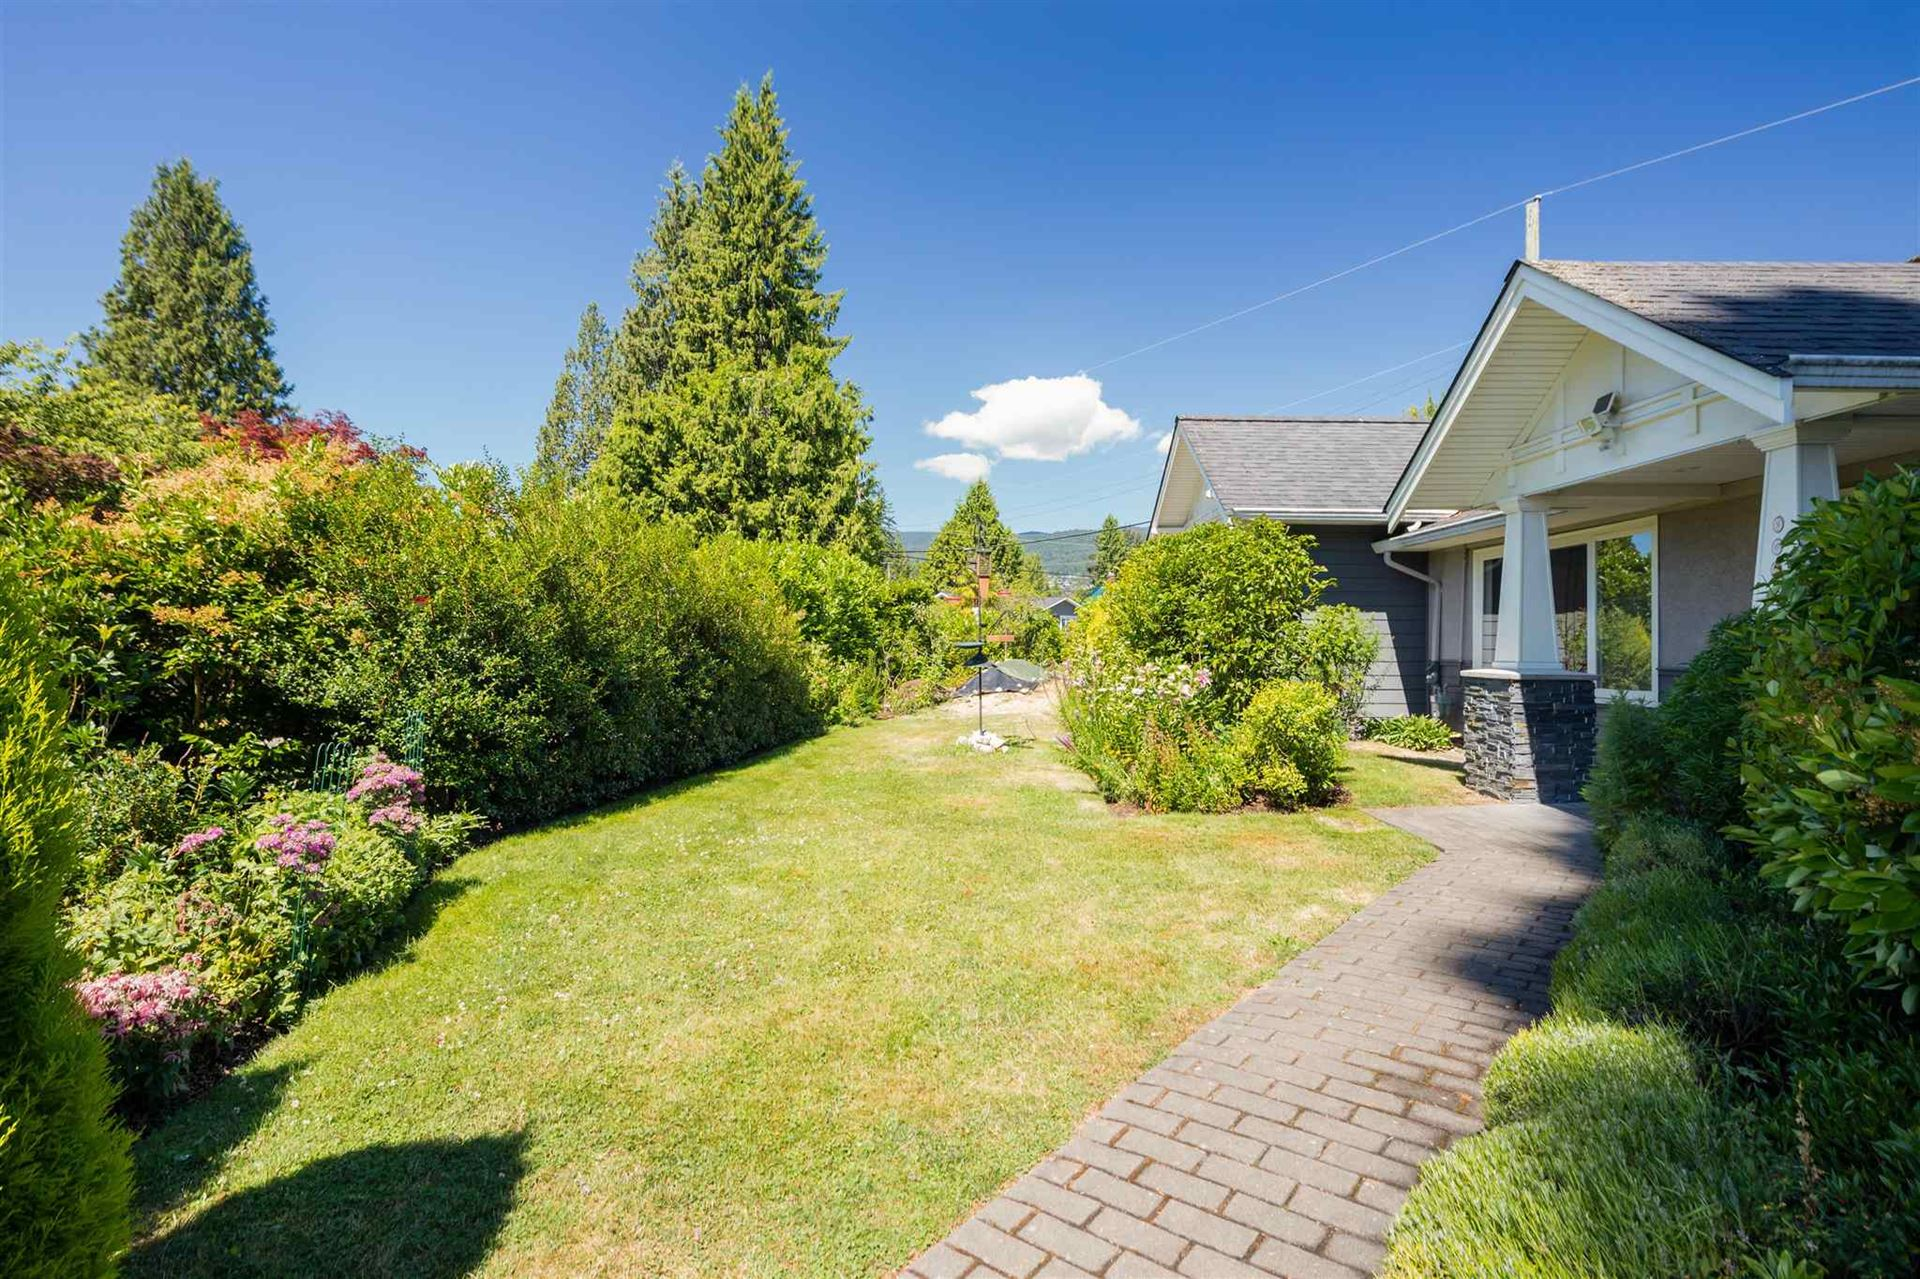 Photo of 960 W QUEENS ROAD, North Vancouver, BC V7R 1H2 (MLS # R2604917)